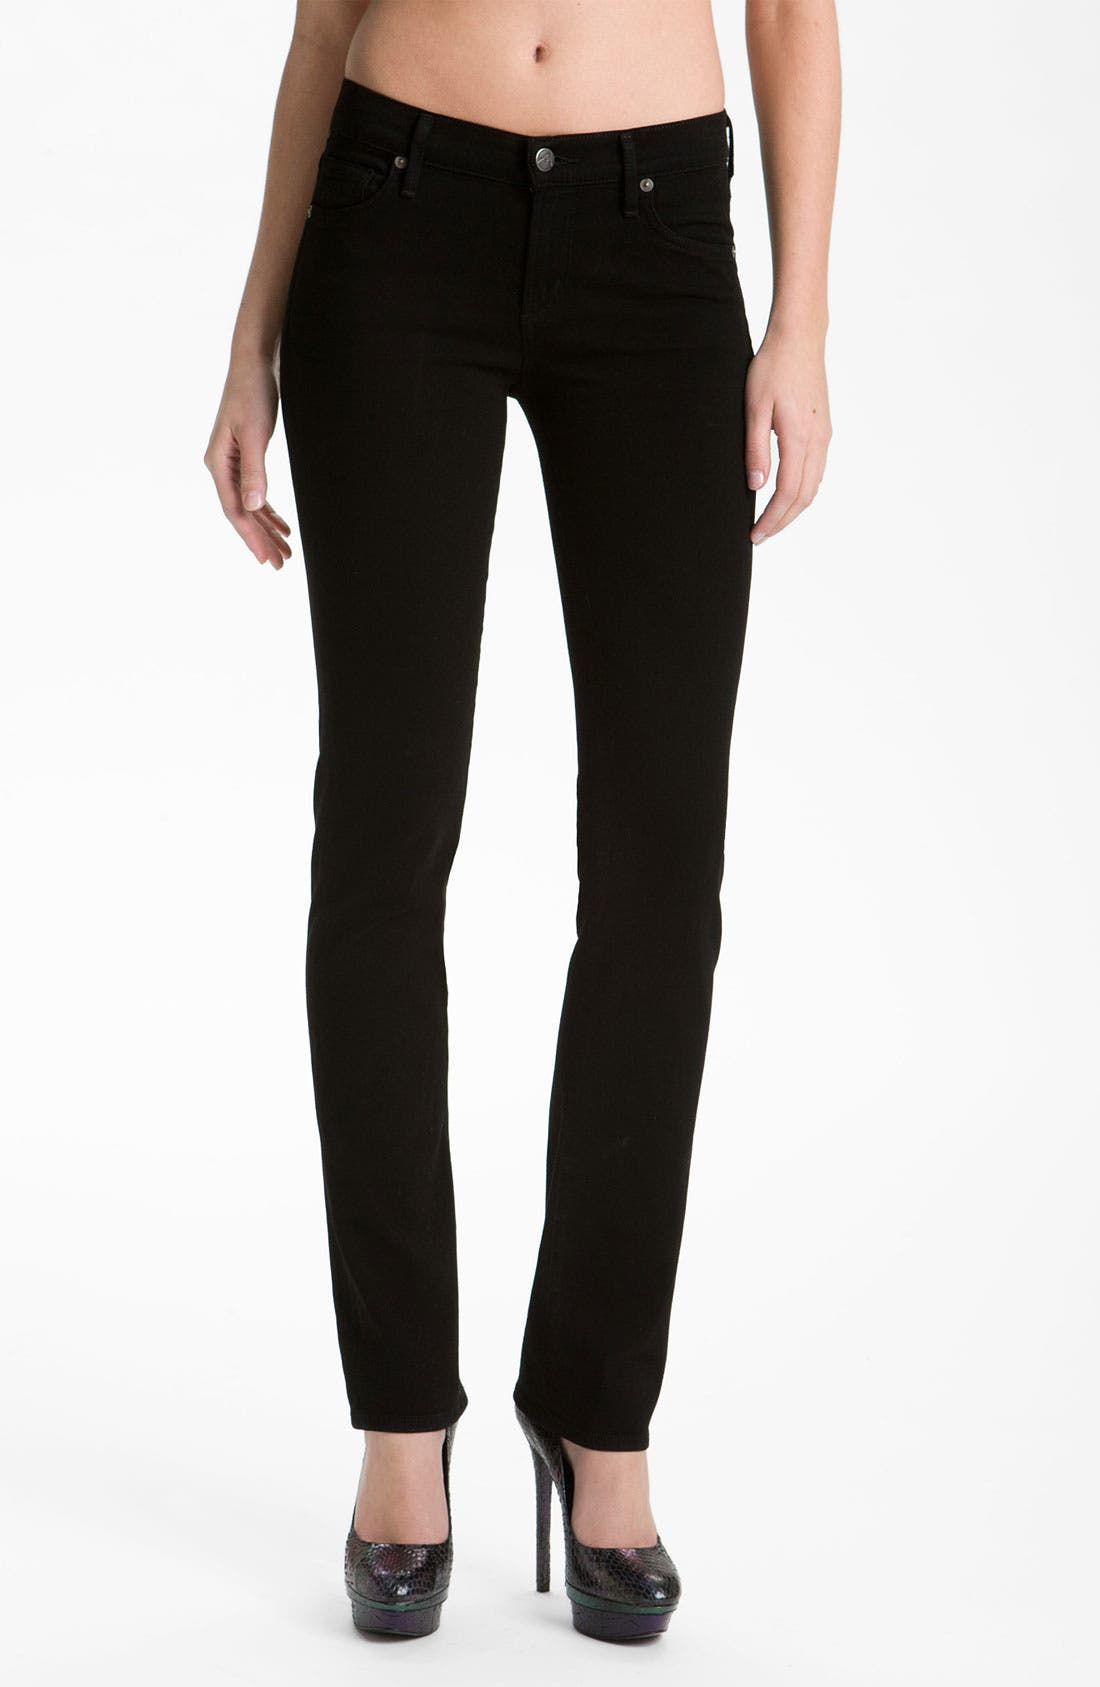 Alternate Image 1 Selected - Citizens of Humanity 'Ava' Straight Leg Stretch Jeans (Vamp Black) (Online Exclusive)